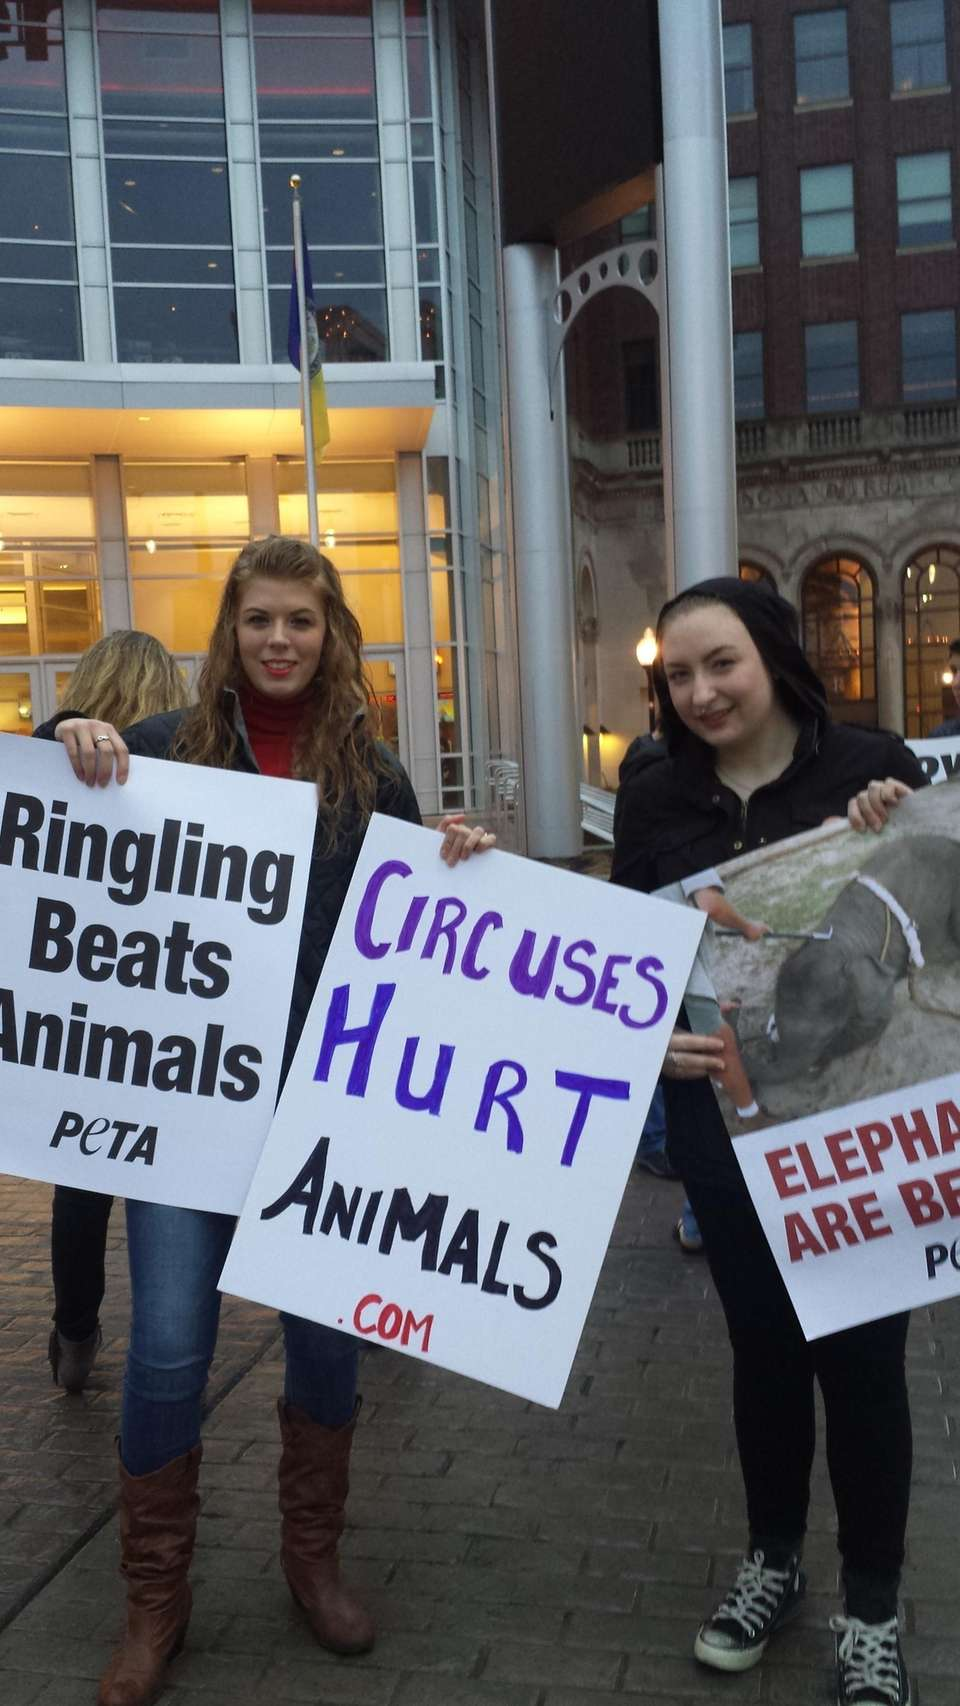 Protesting Ringling in Allentown, PA.